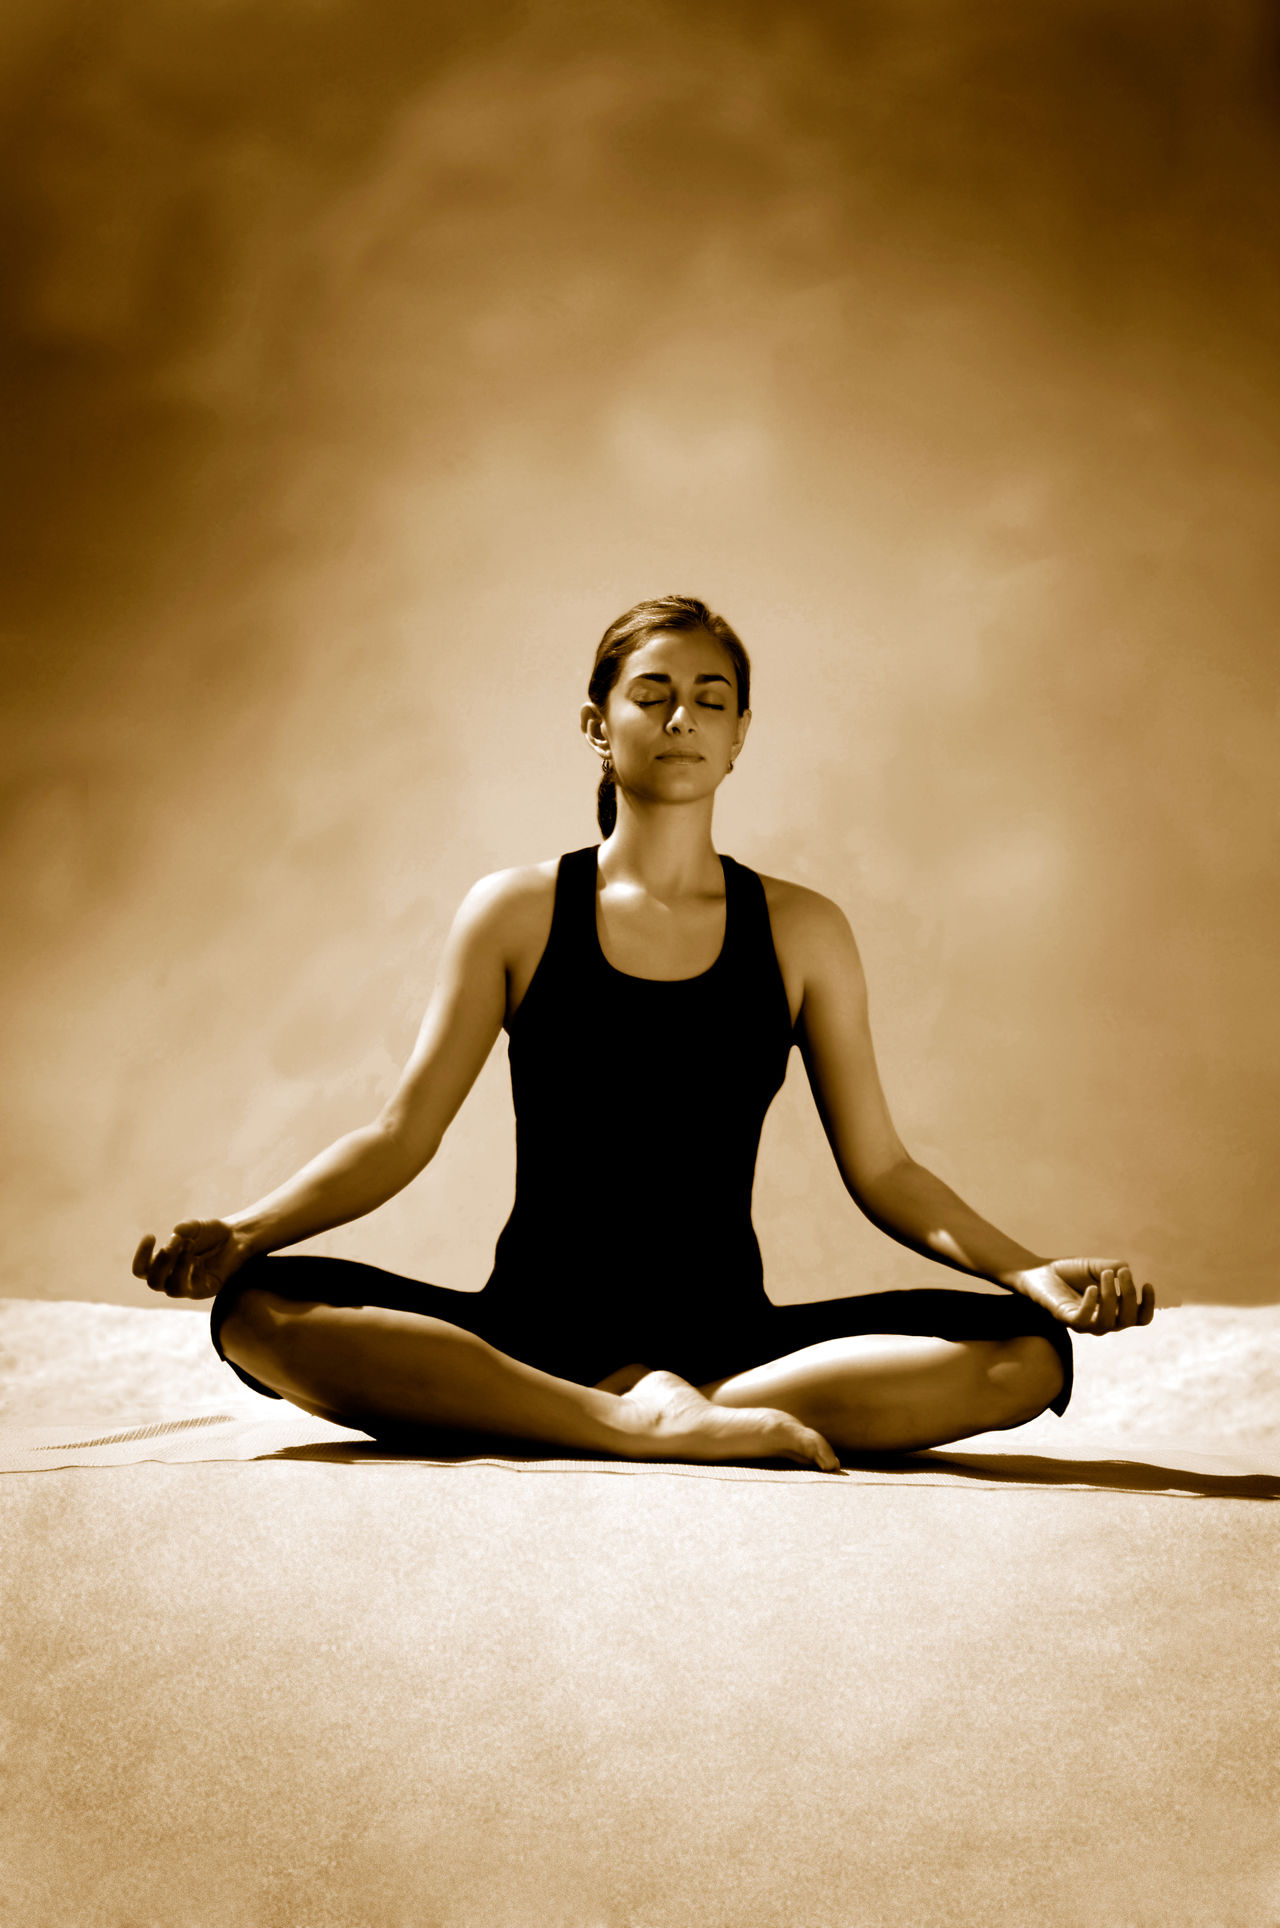 Yoga instructor meditating, sepia toned Cross-legged Healthy Lifestyle Meditating One Woman Only Relaxation Exercise Serene People Spirituality Wellbeing Women Yoga Zen-like